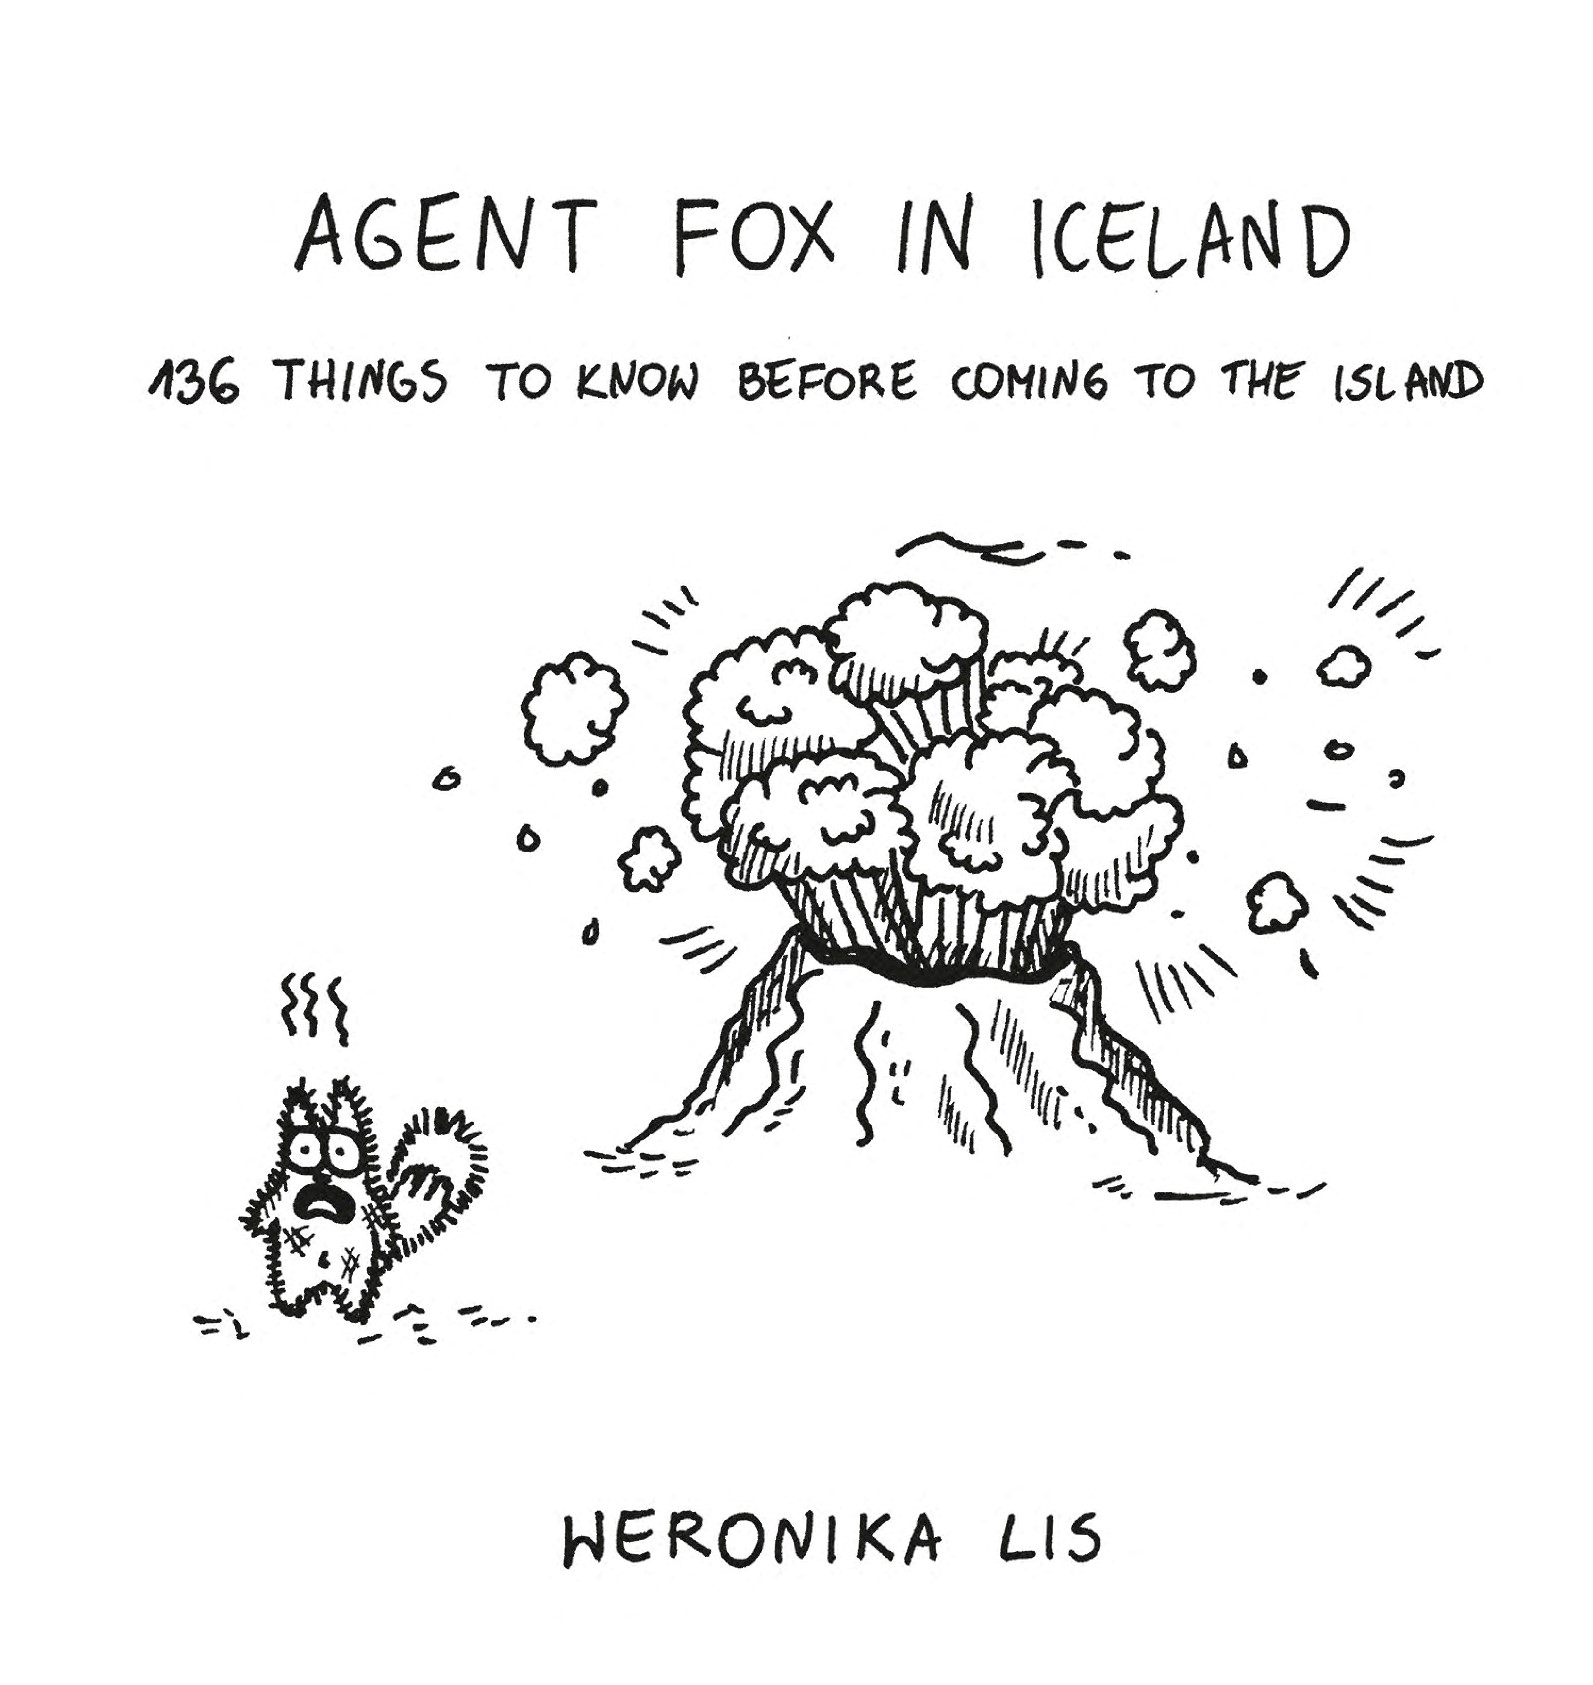 Agent Fox in Iceland